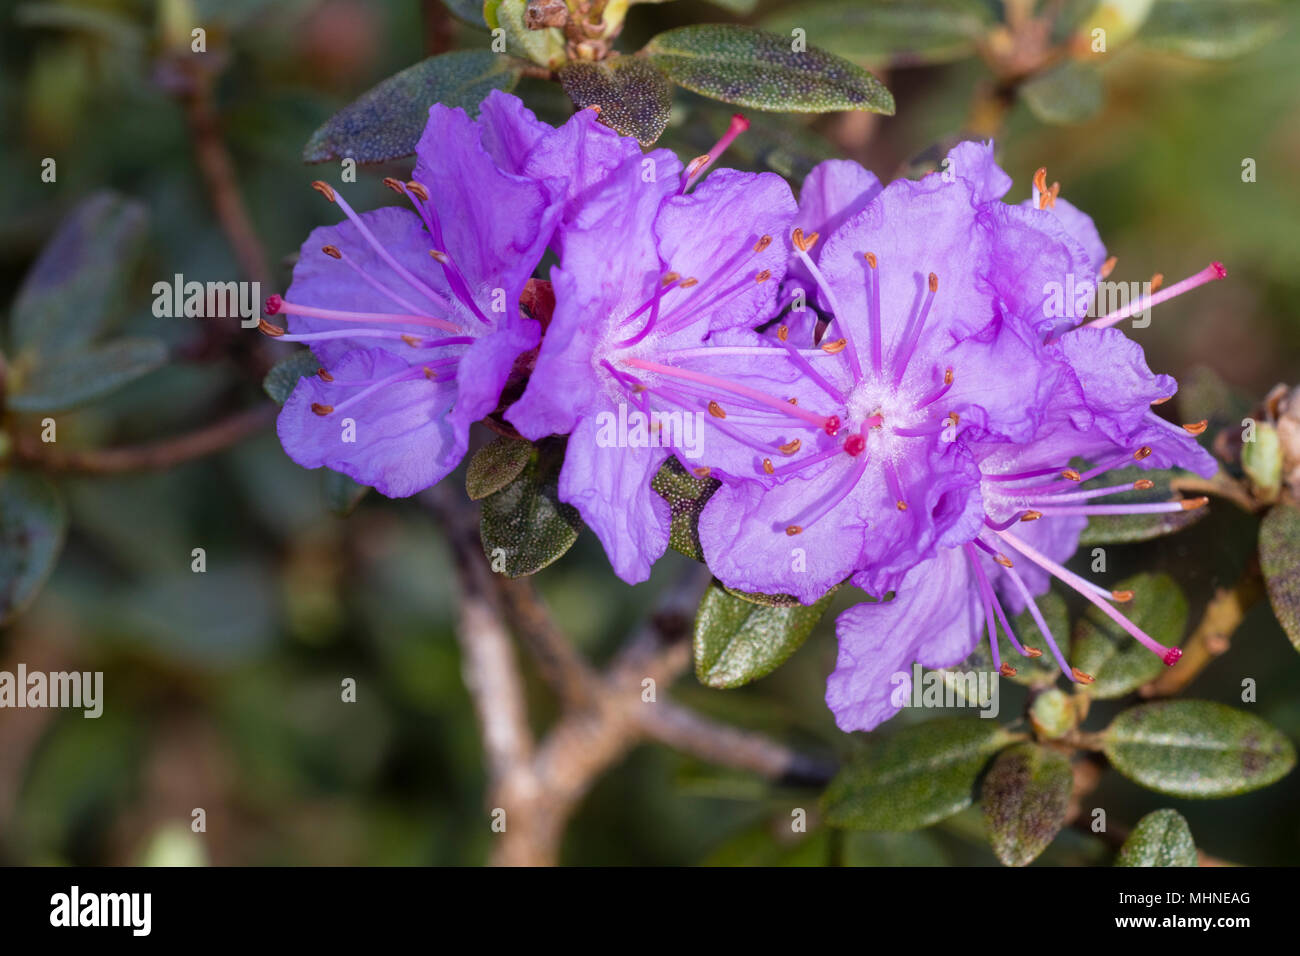 Spring flowers of the compact dwarf shrub, Rhododendron 'Ramapo' - Stock Image